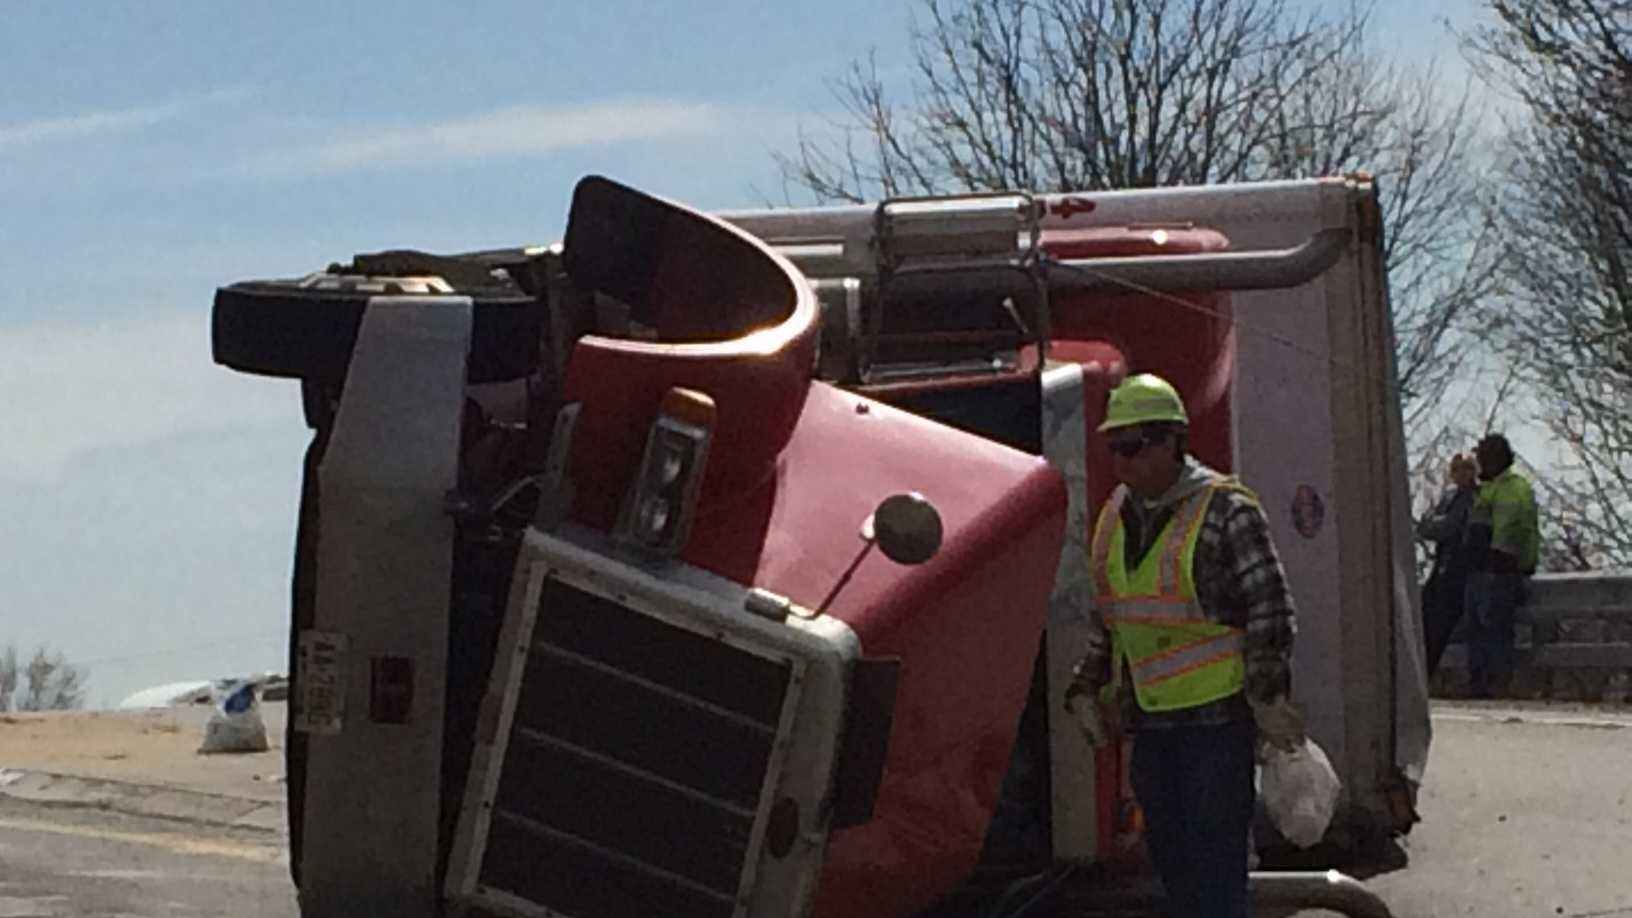 An overturned tractor-trailer is causing problems at Route 30 and Interstate 83 in Manchester Township, York County.